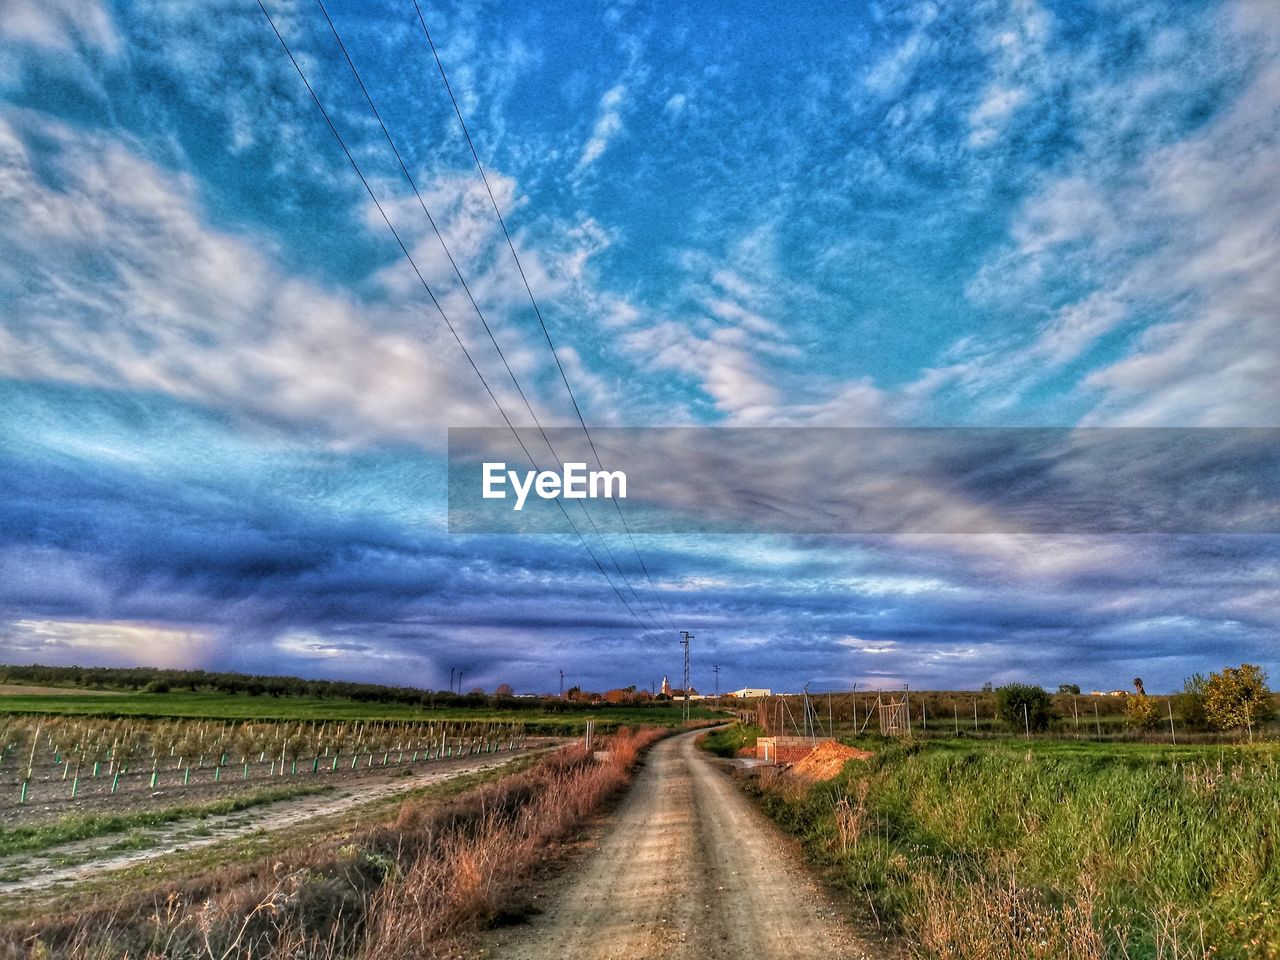 Dirt road passing through landscape against cloudy sky